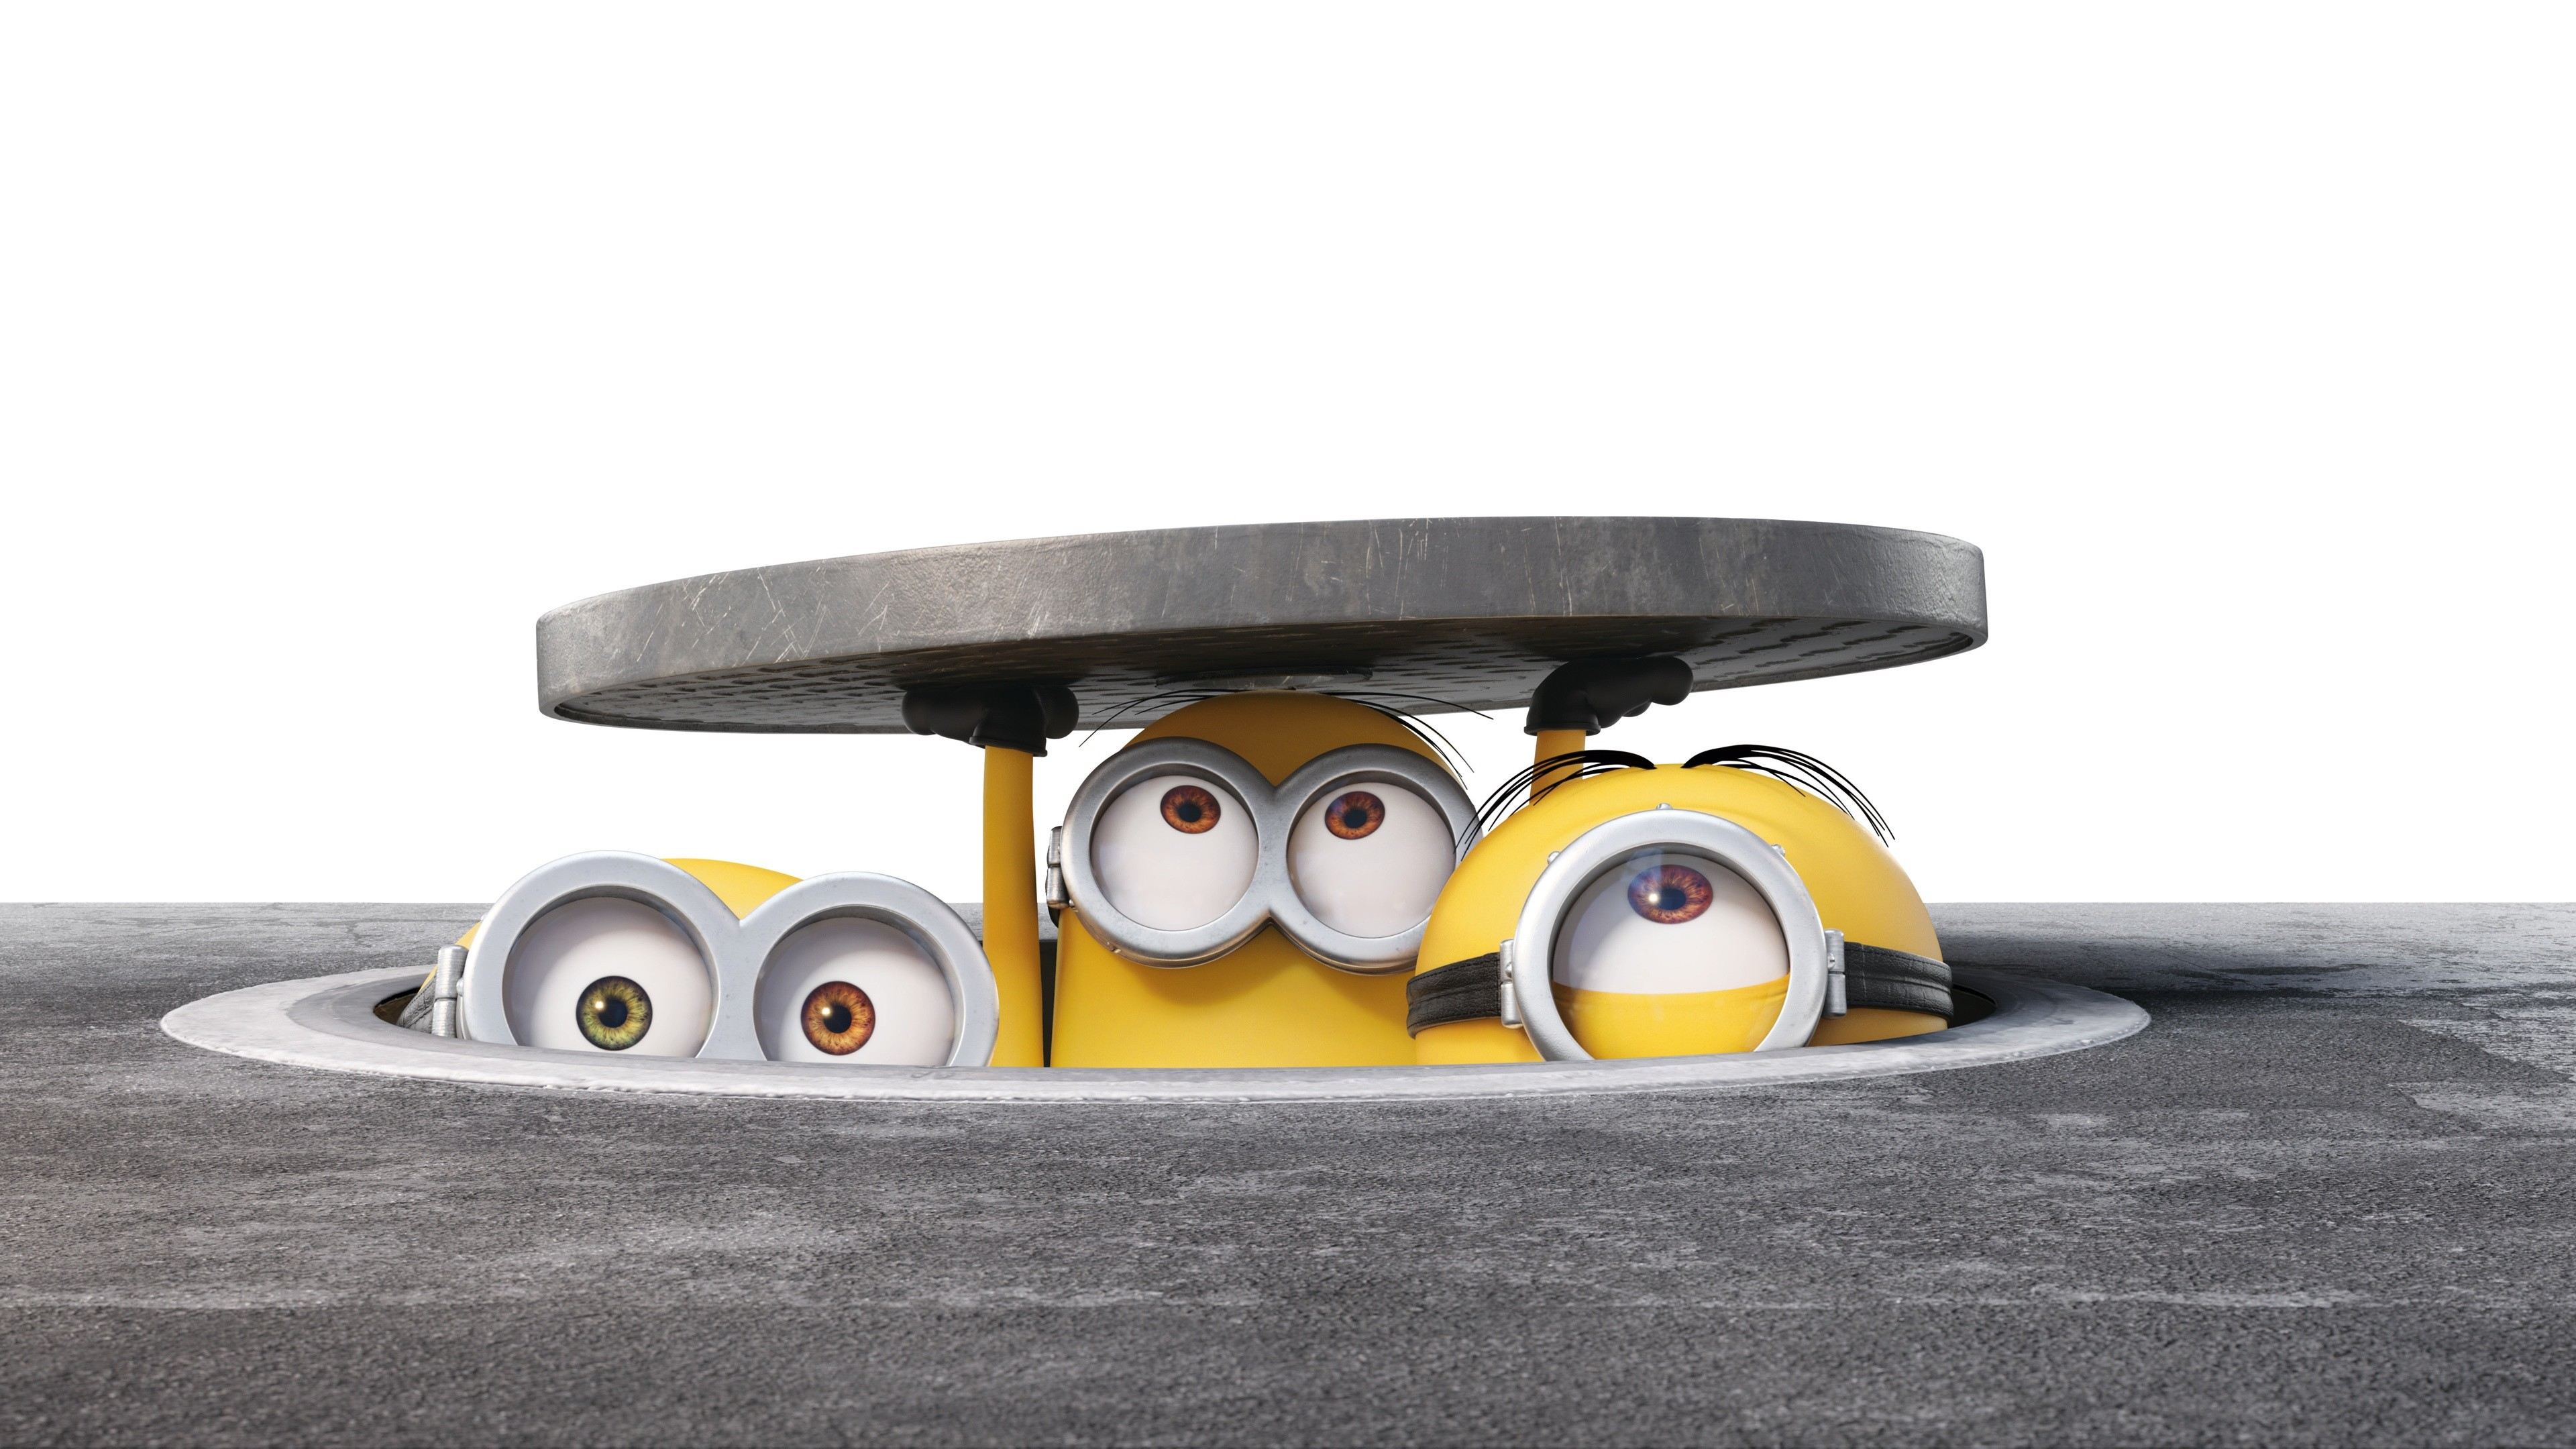 3840x2160 HD Background New Cute Minions Hiding Bob Stuart Kevin Wallpaper .